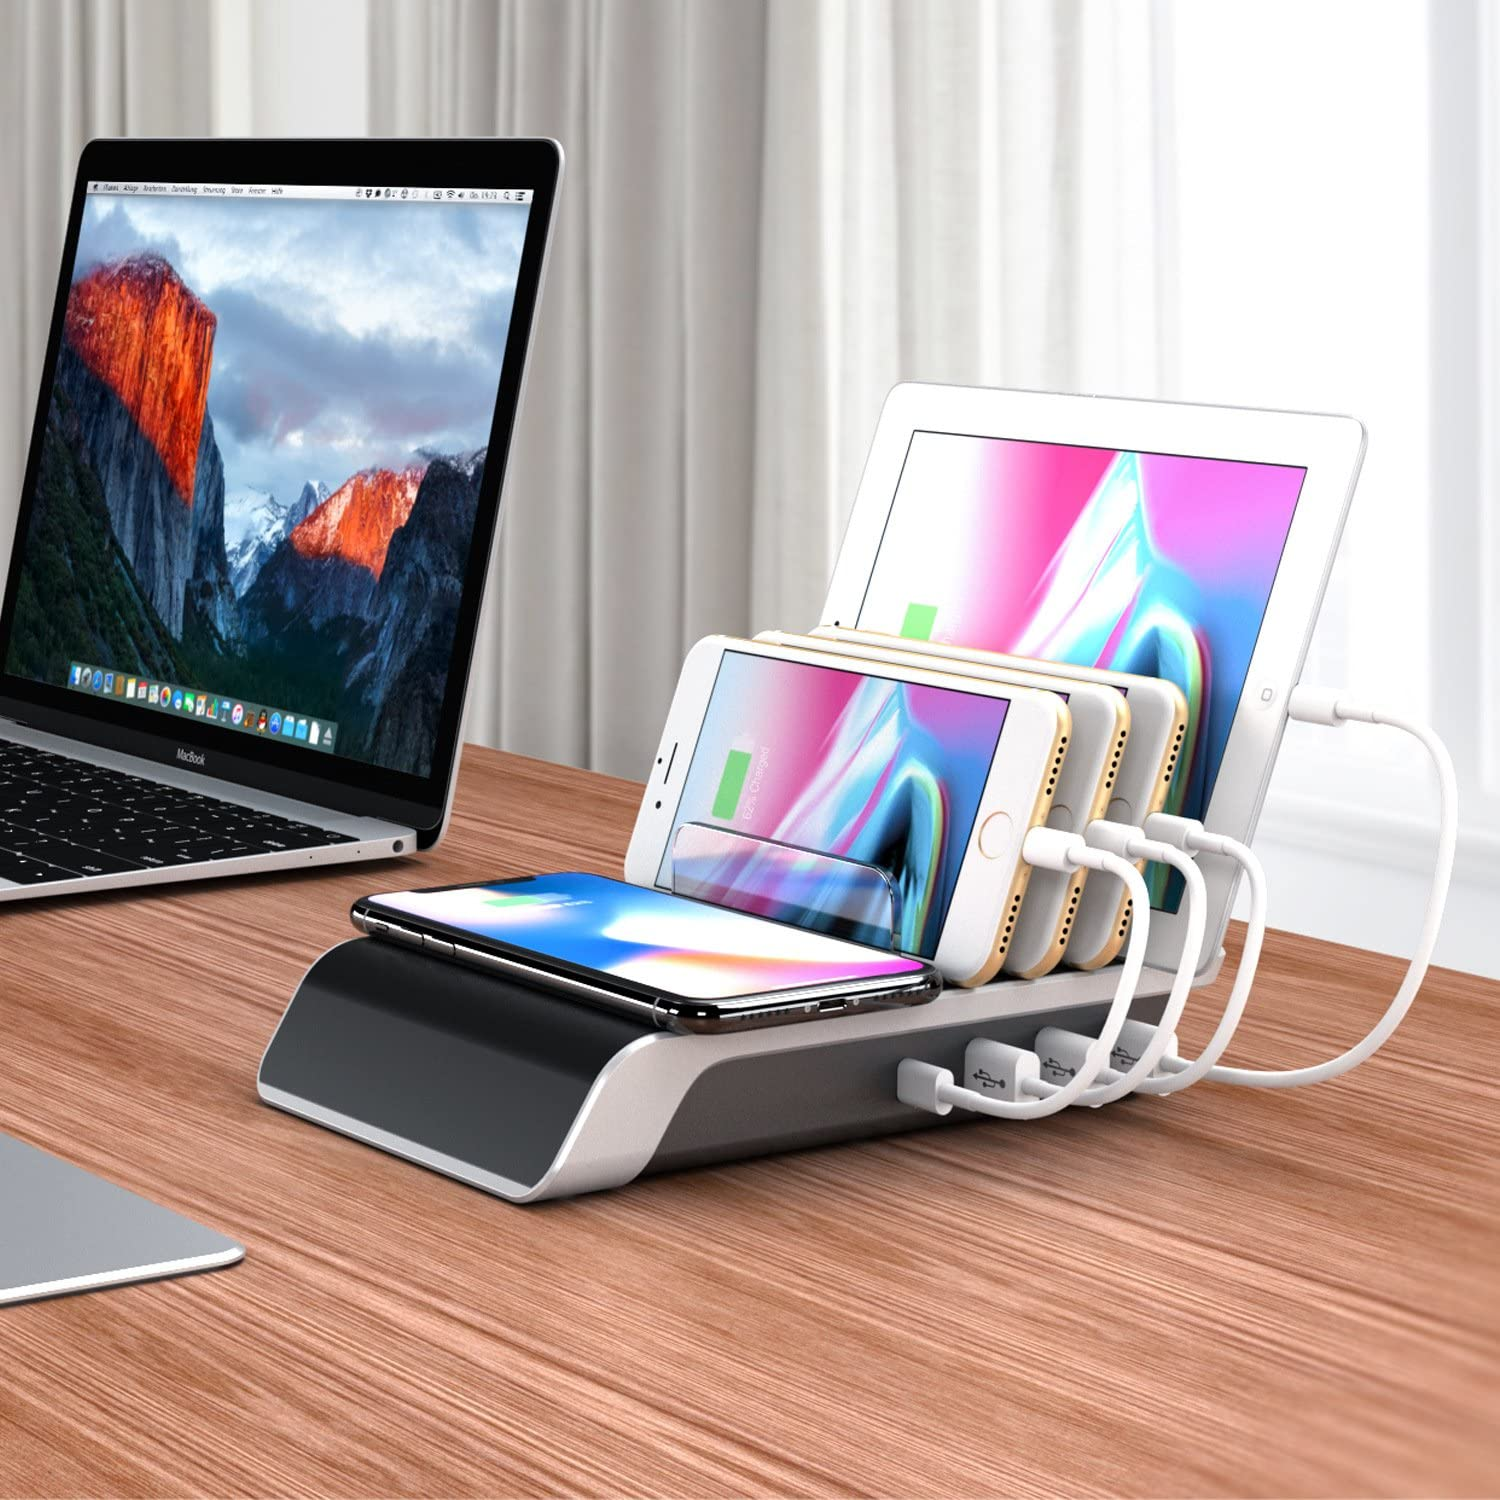 one QC 3.0 Charger and Four Smart Charger for iPhone X//8 Multi Port USB Charging Station,LDH 6 Port Mushroom Lamp QC3.0 Charger iPad,S8,and More one 2.0A Smart Charger for Mushroom Shape Desk lamp